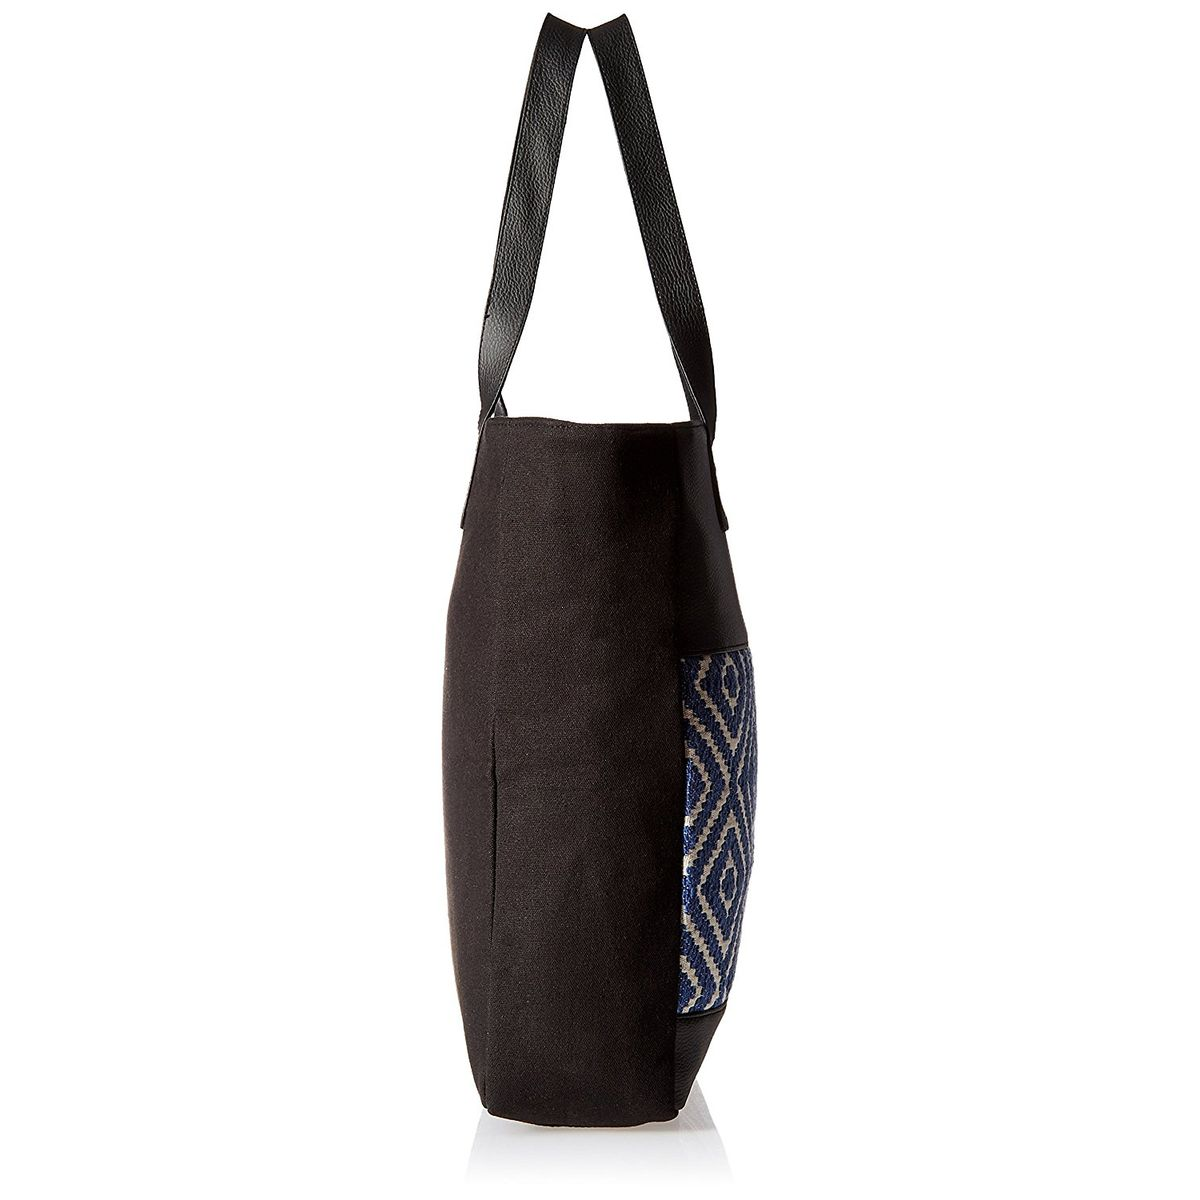 Kanvas Katha Sling Bag